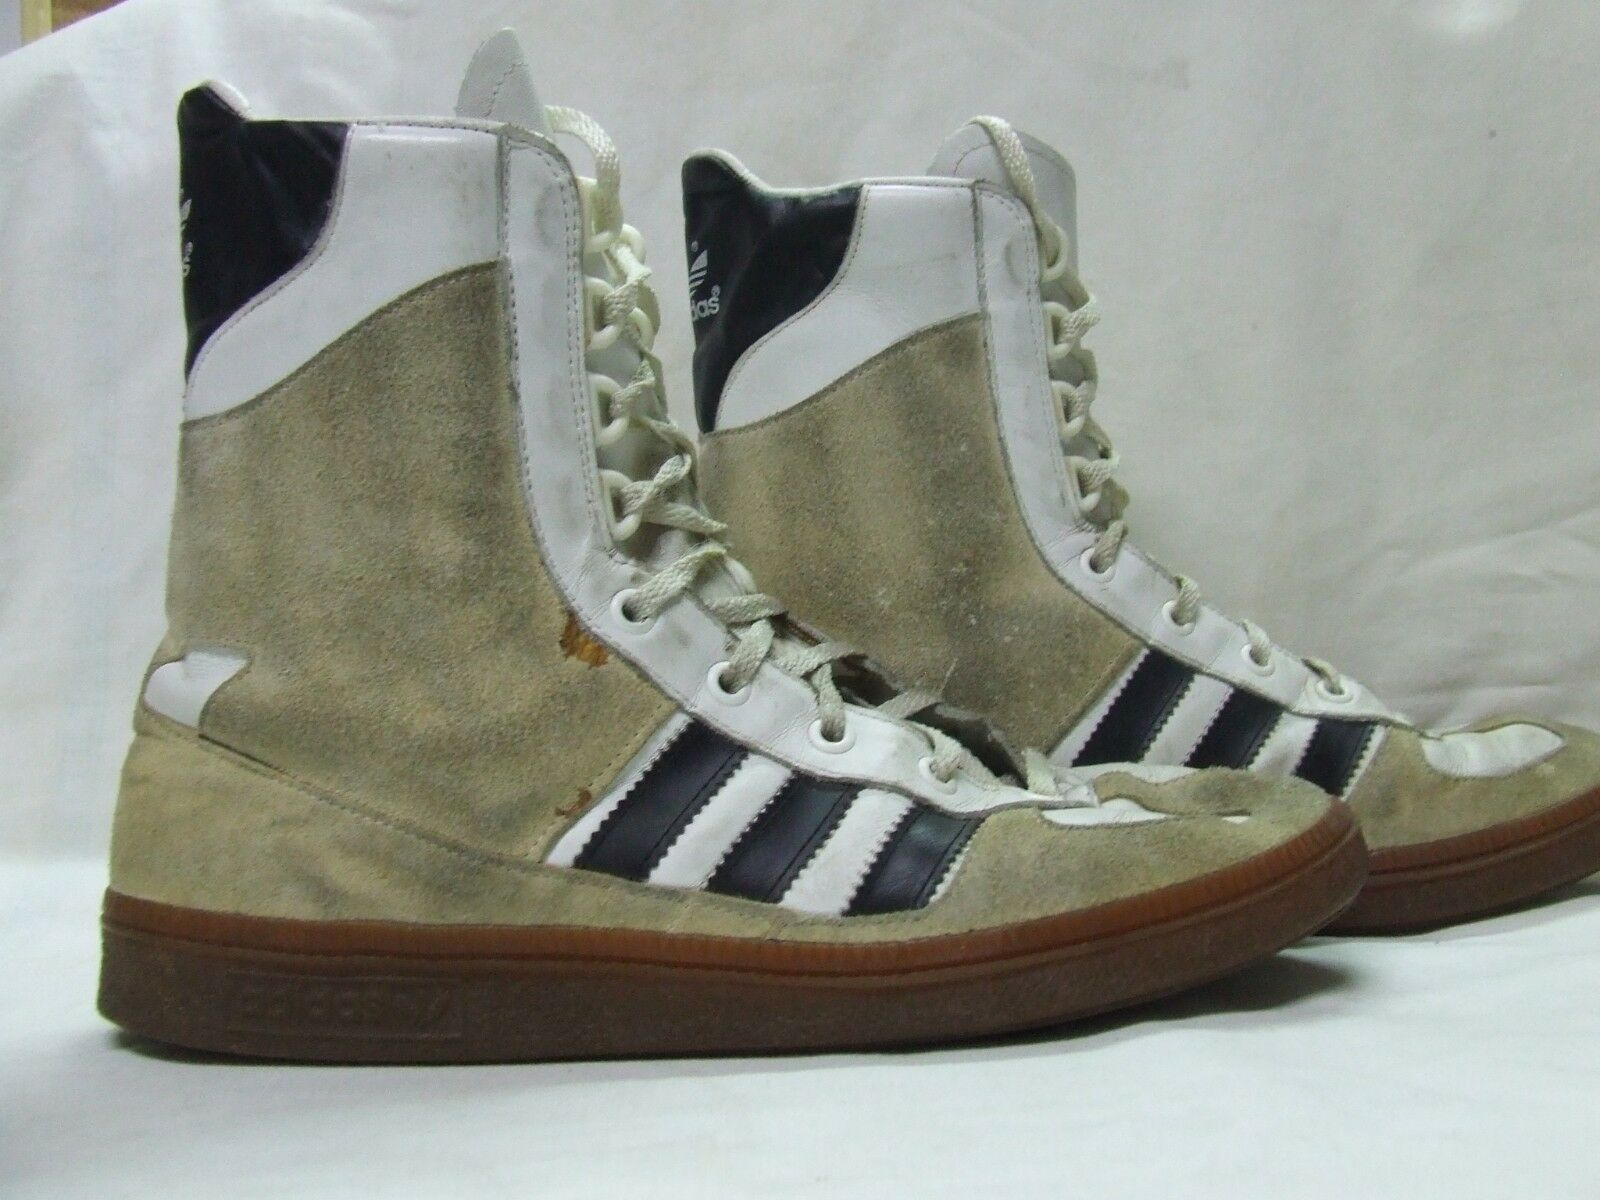 SHOES MAN WOMAN VINTAGE ADIDAS ADIMED STABIL size 8